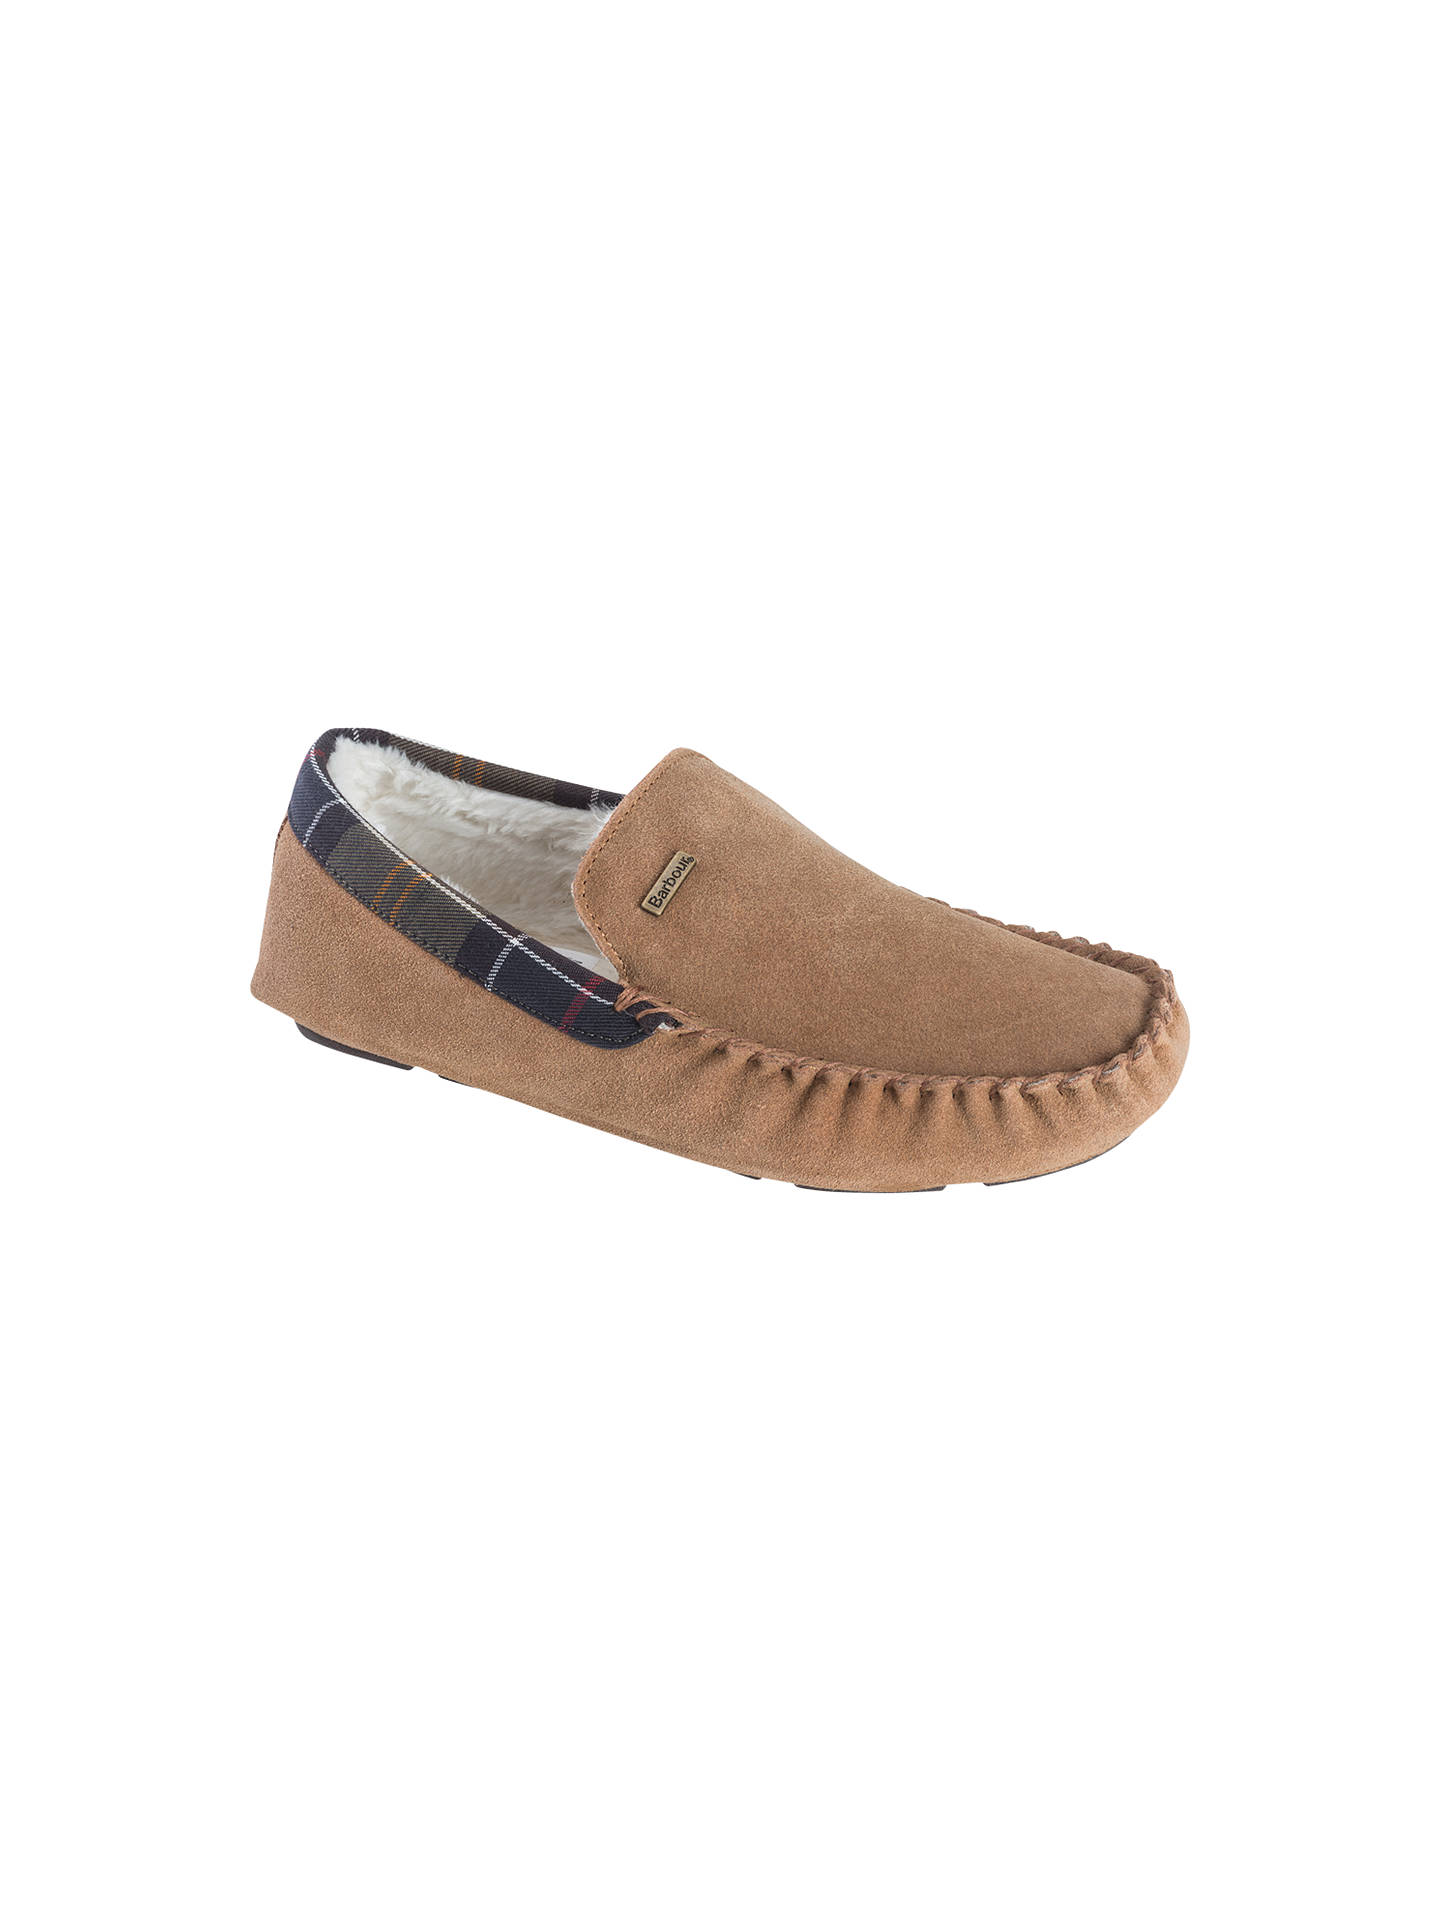 342aba5bbdc8 Barbour Monty Slippers at John Lewis   Partners